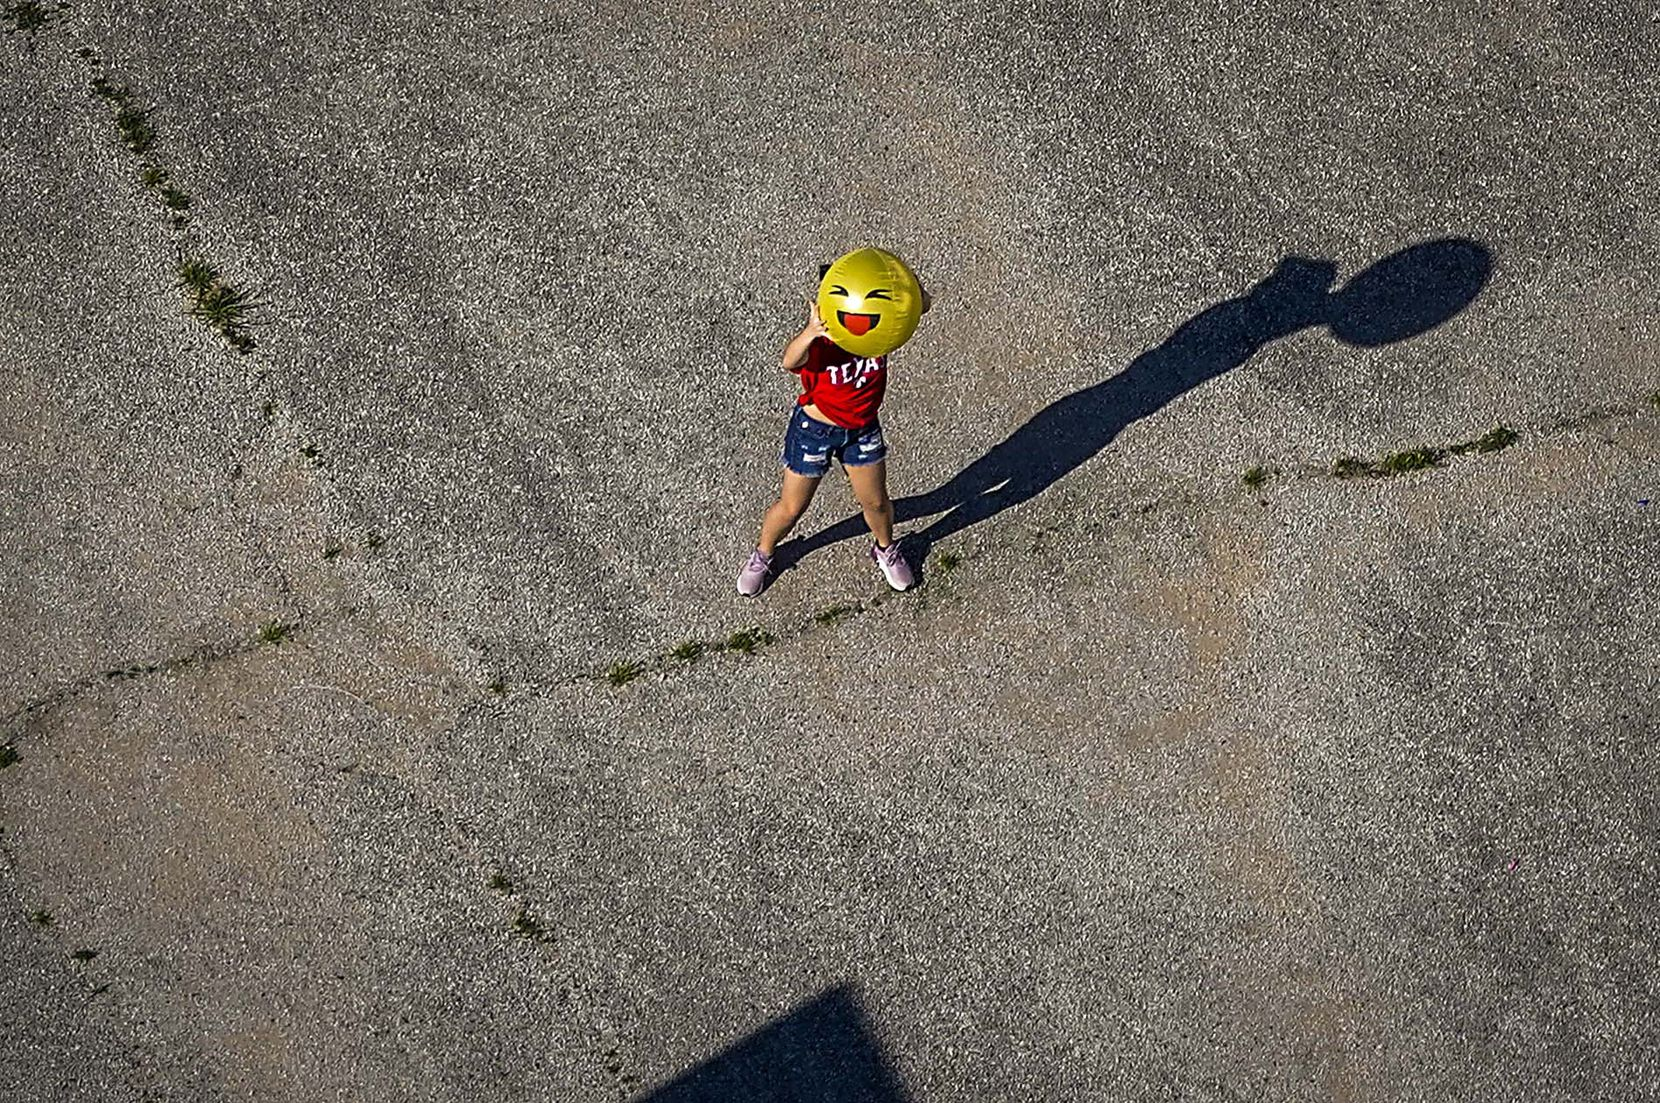 A child holds up a smiley face ball on a playground at D.A. Hulcy Middle School on Tuesday, March 24, 2020 in Dallas.